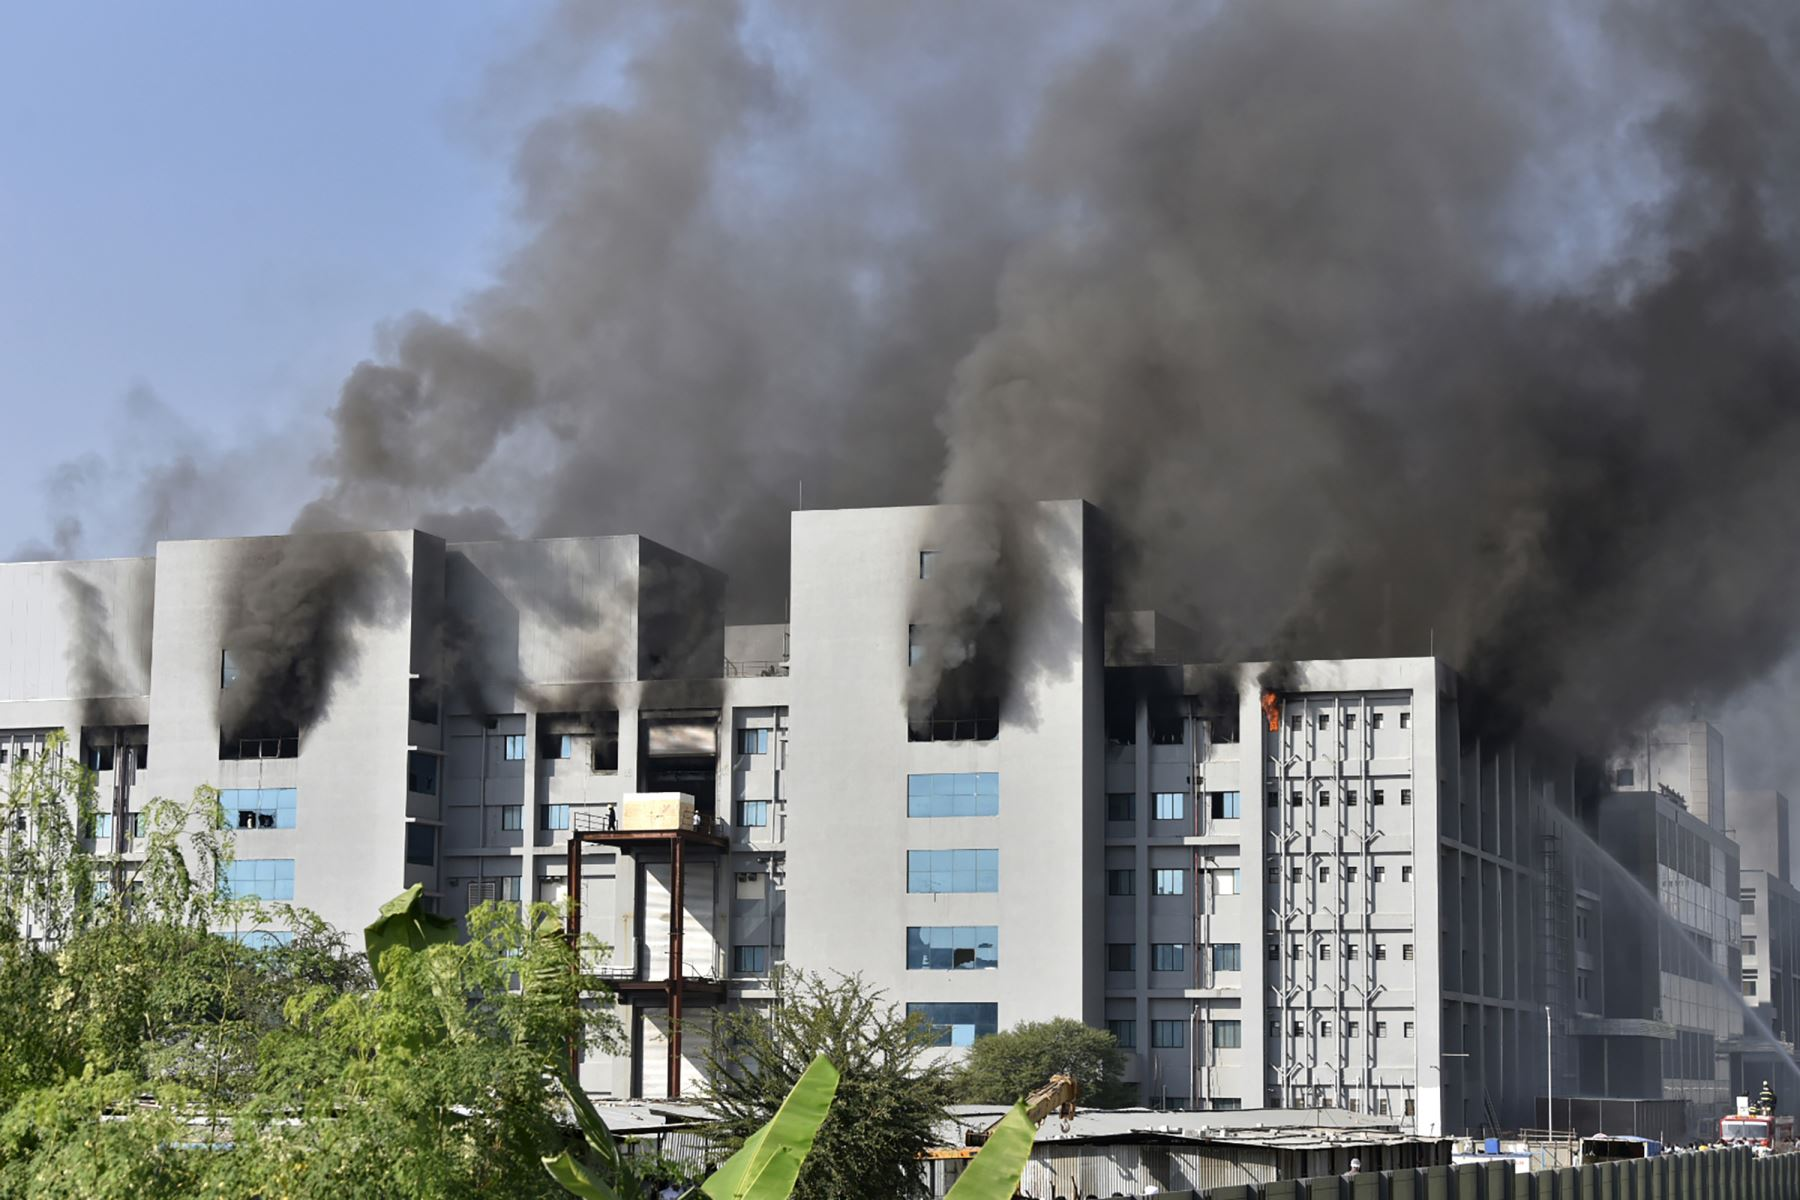 El humo se eleva después de que estalló un incendio en el Serum Institute de India  en el Serum Institute de India, el mayor fabricante de vacunas del mundo.